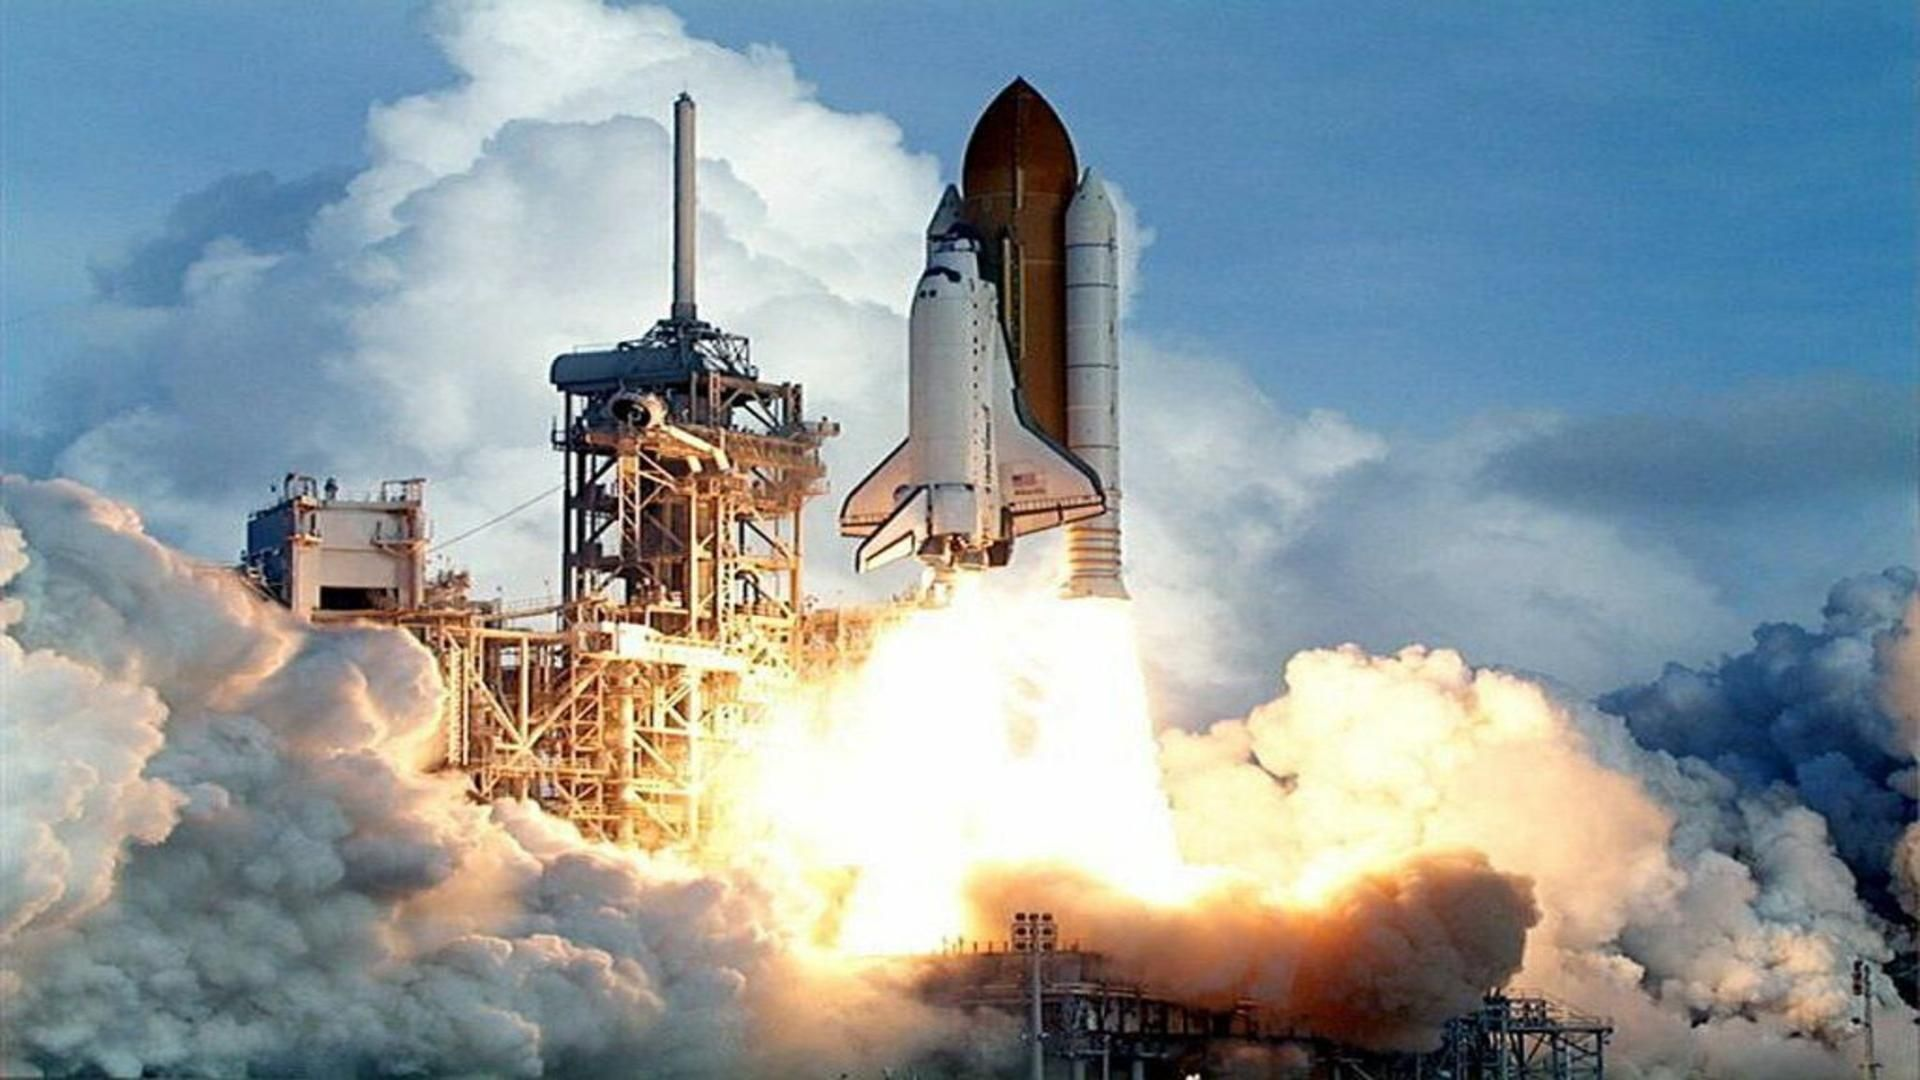 Columbia Shuttle Launching Into Space Free Desktop Background Nasa History Space Flight Space Travel